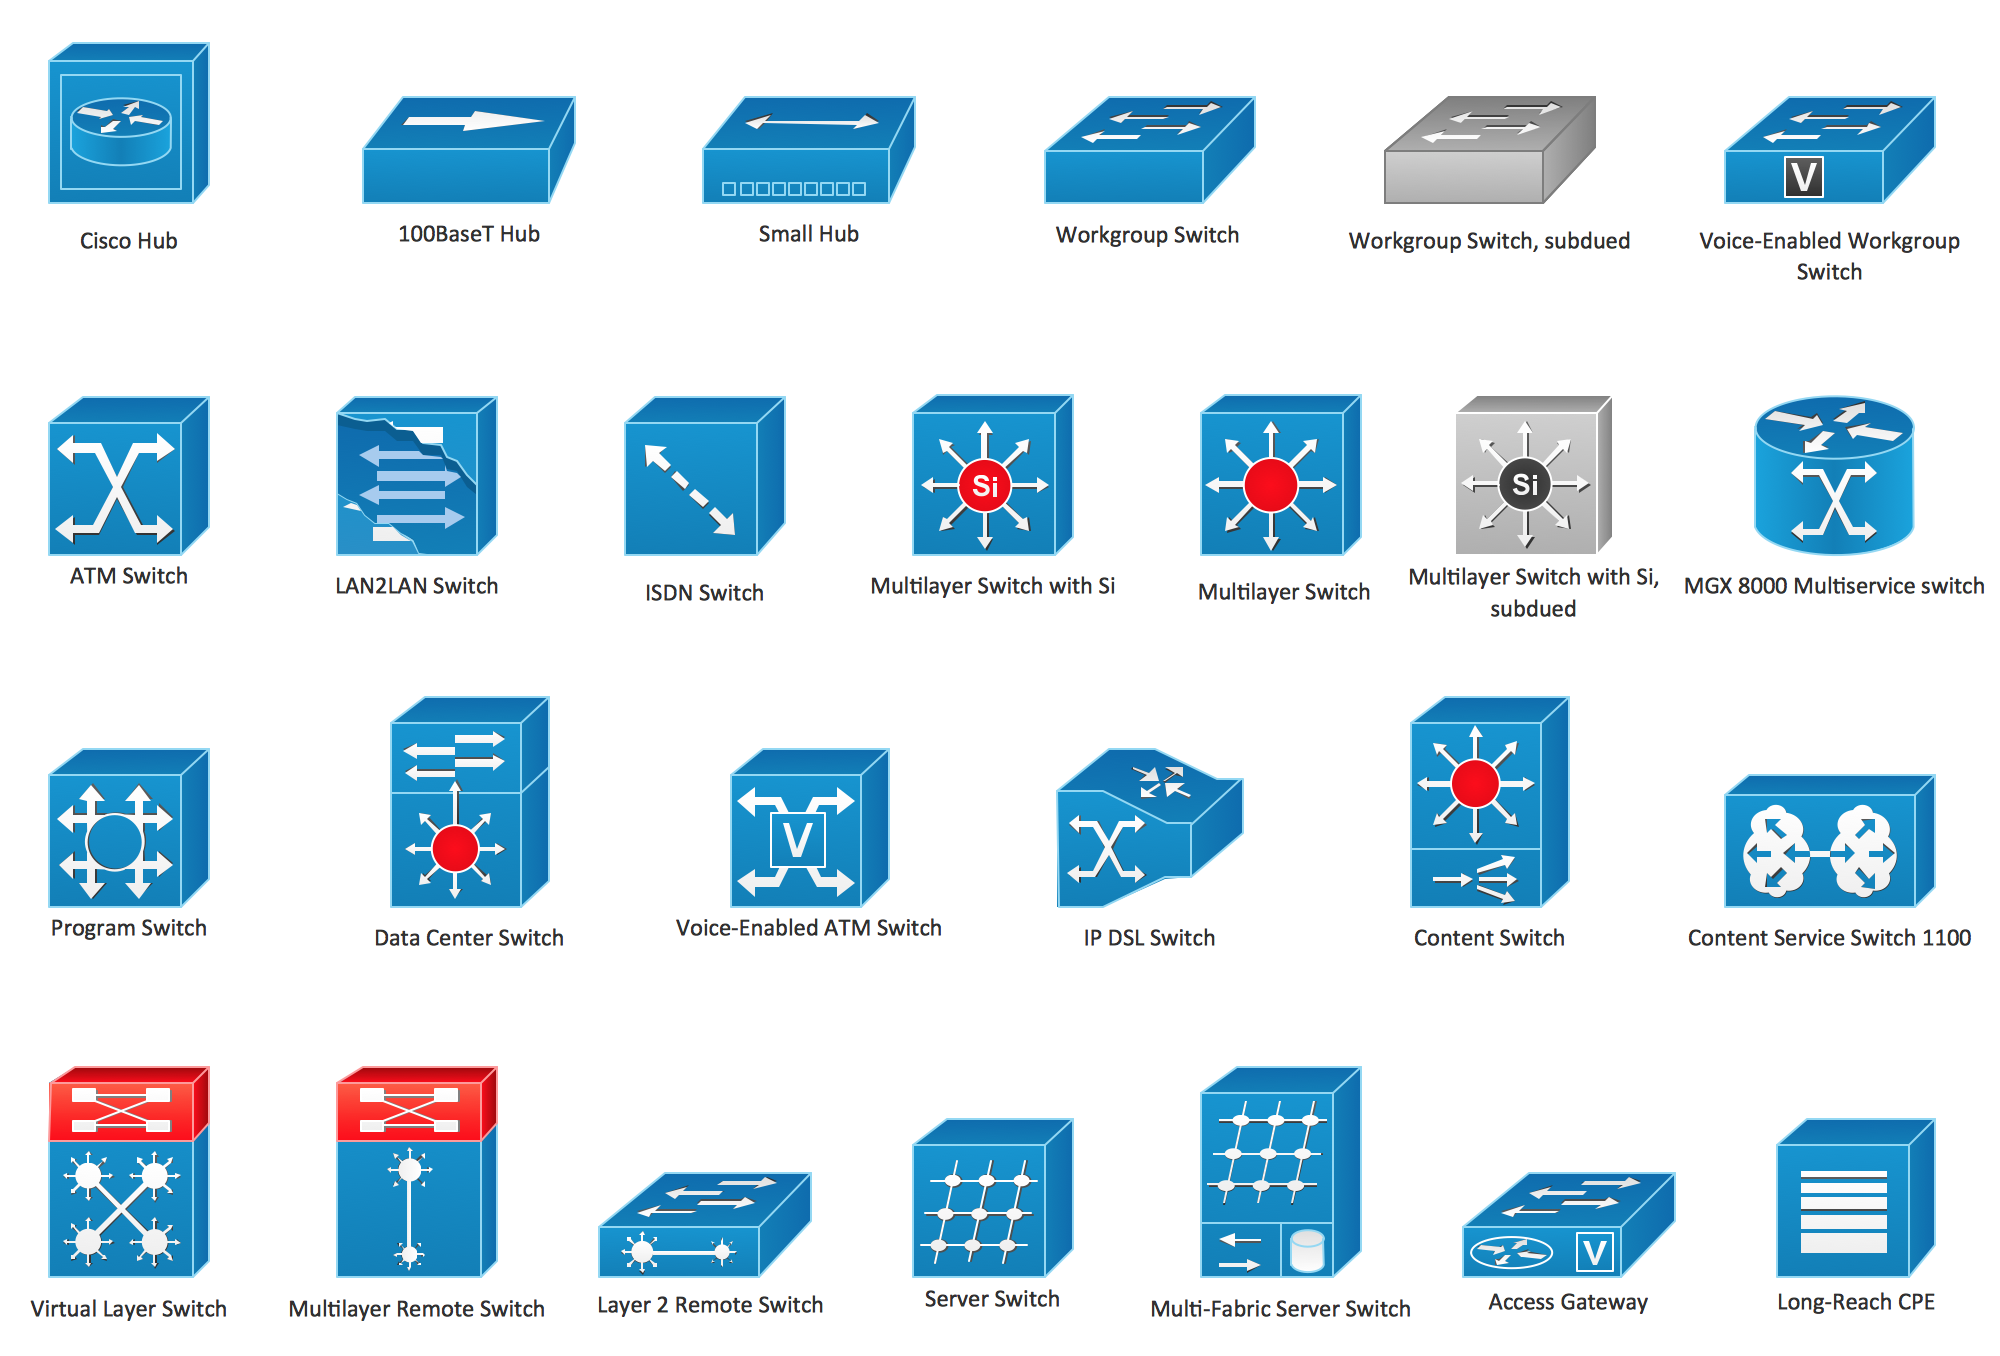 9 PowerPoint Cisco Switch Icon Images